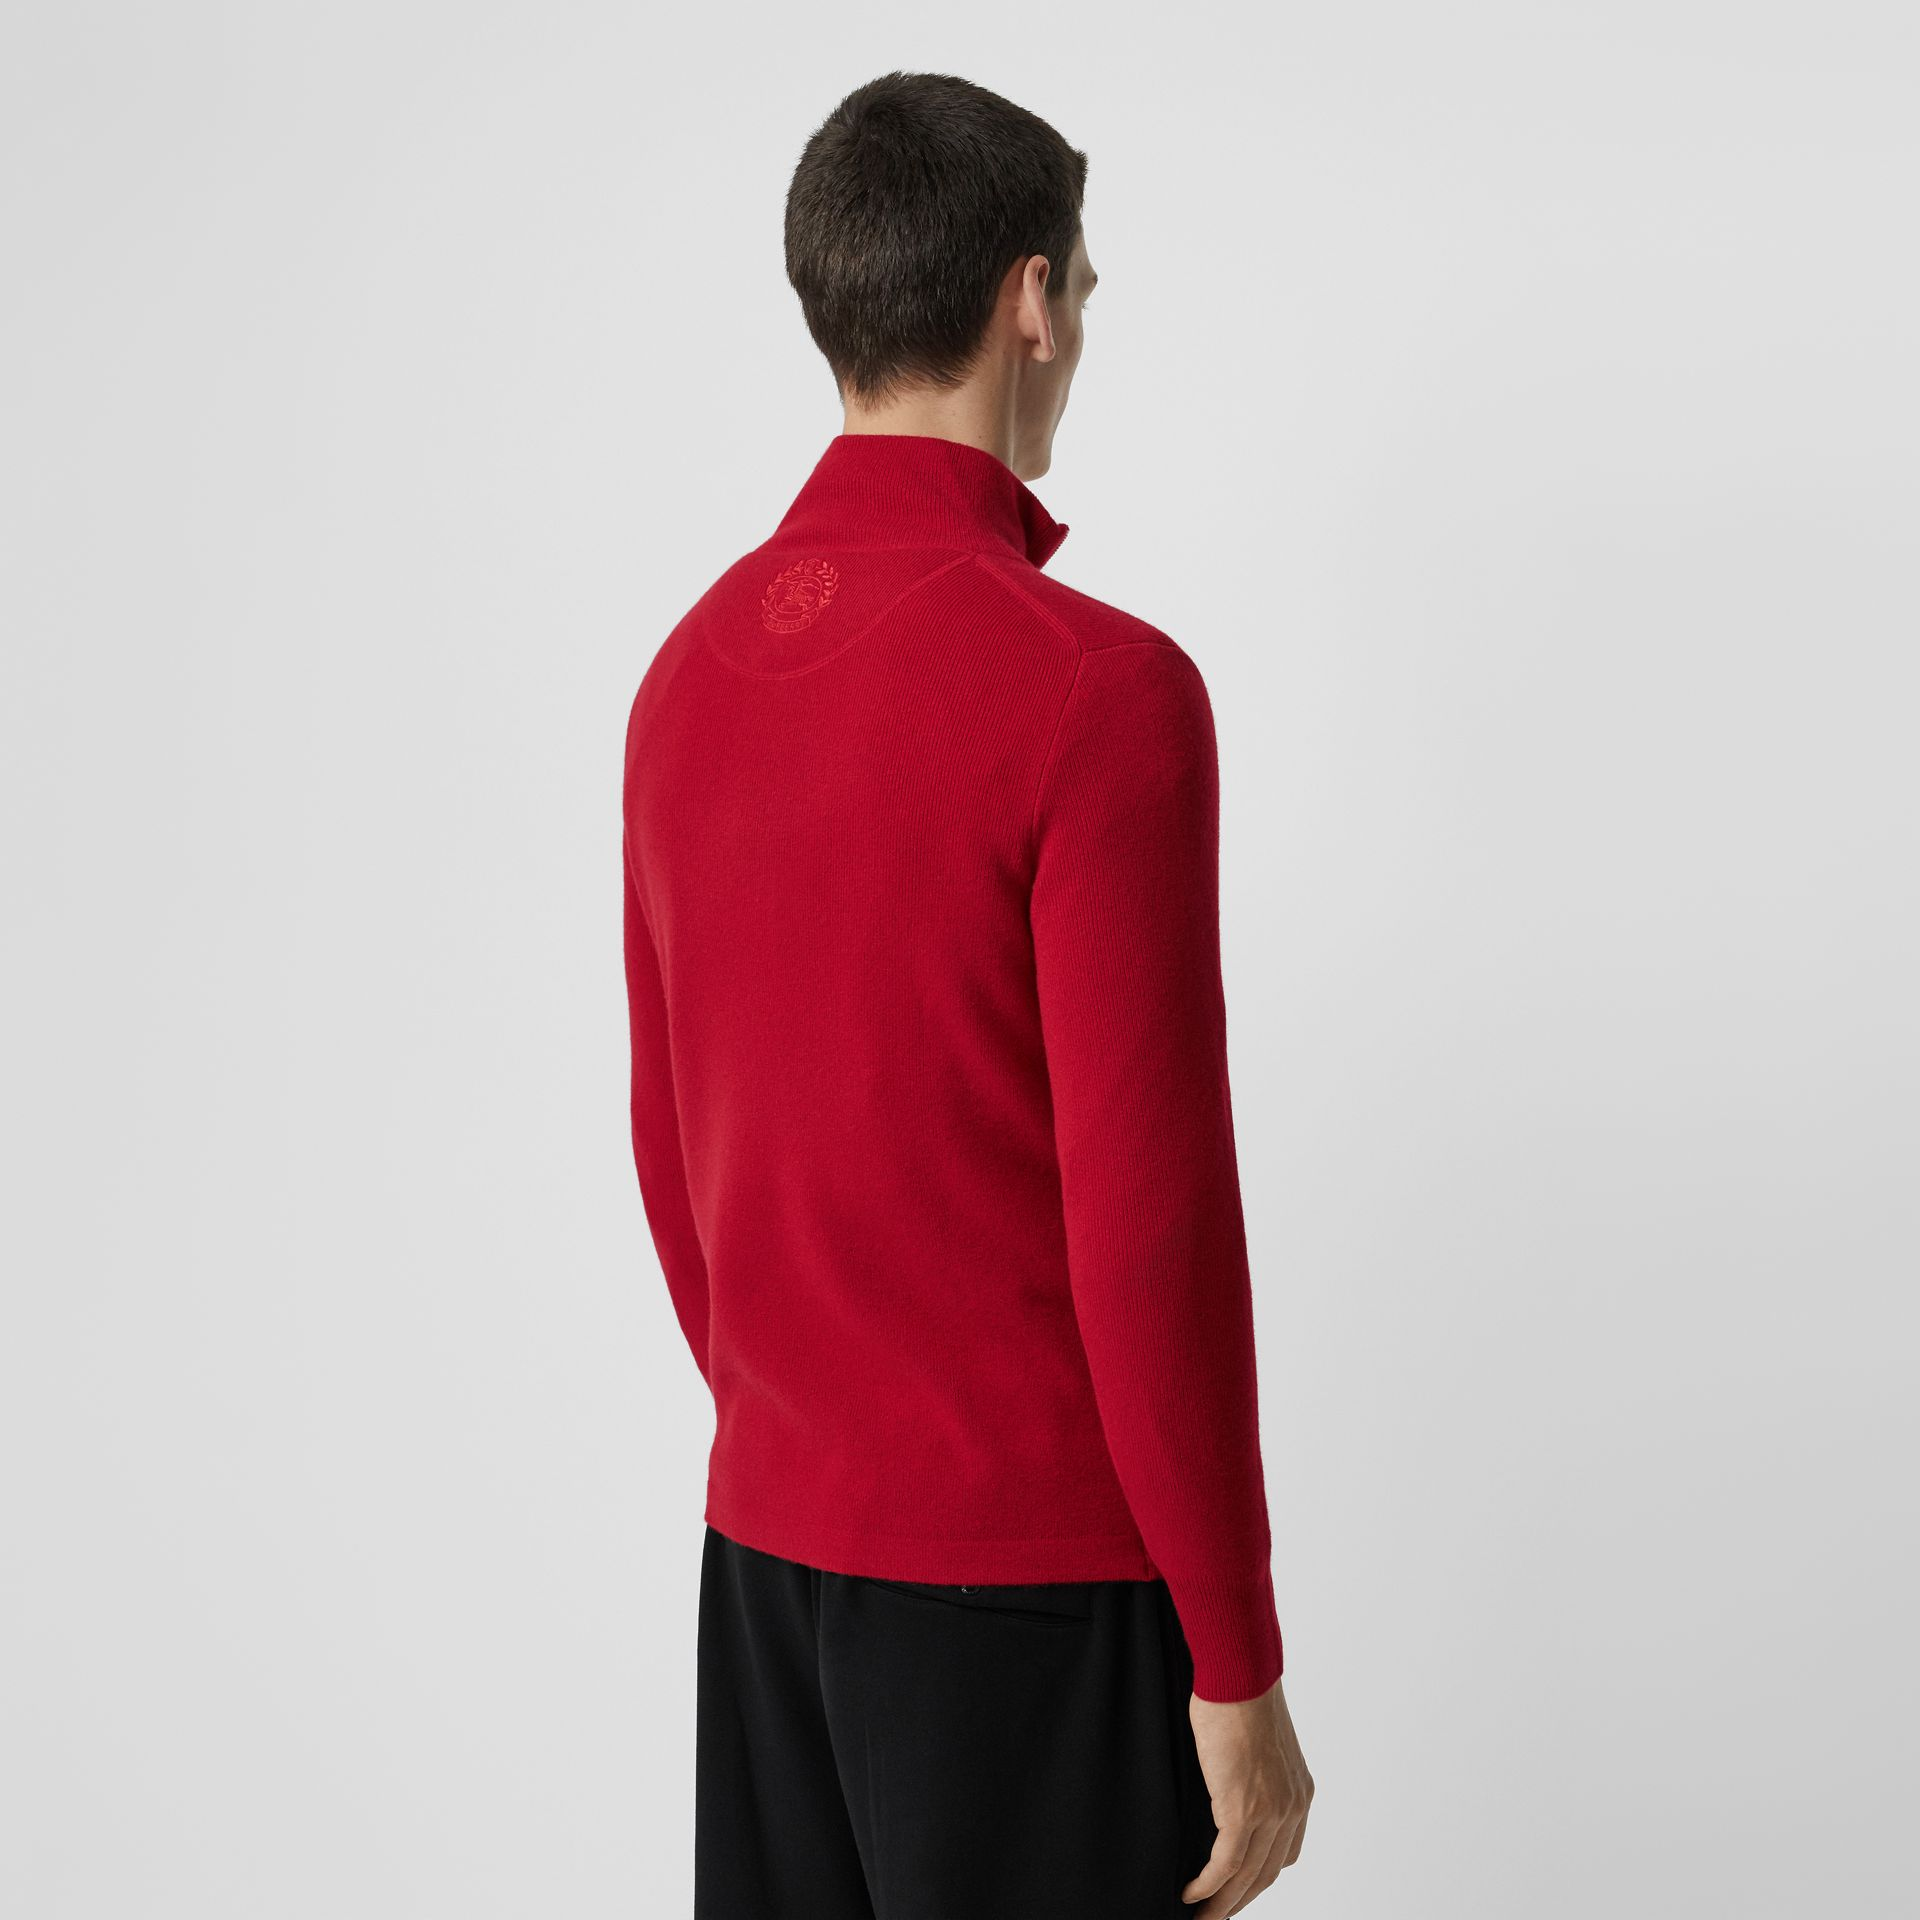 Rib Knit Cashmere Half-zip Sweater in Military Red - Men | Burberry - gallery image 2